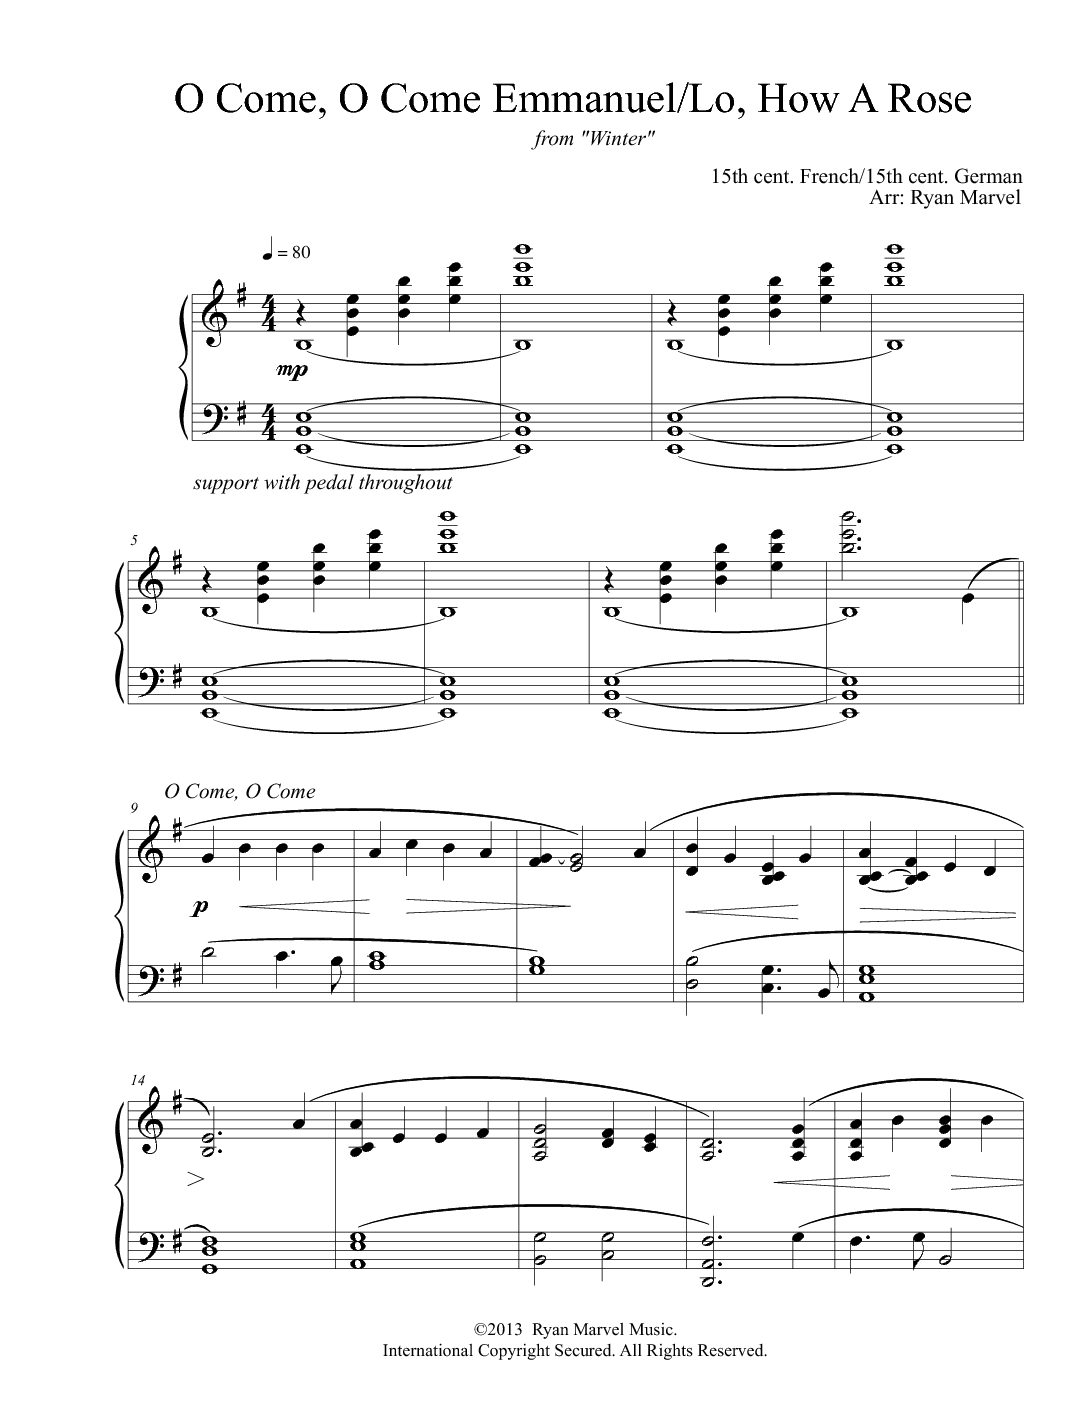 Have Yourself A Merry Little Christmas Sheet Music Pdf.Have Yourself A Merry Little Christmas Sheet Music